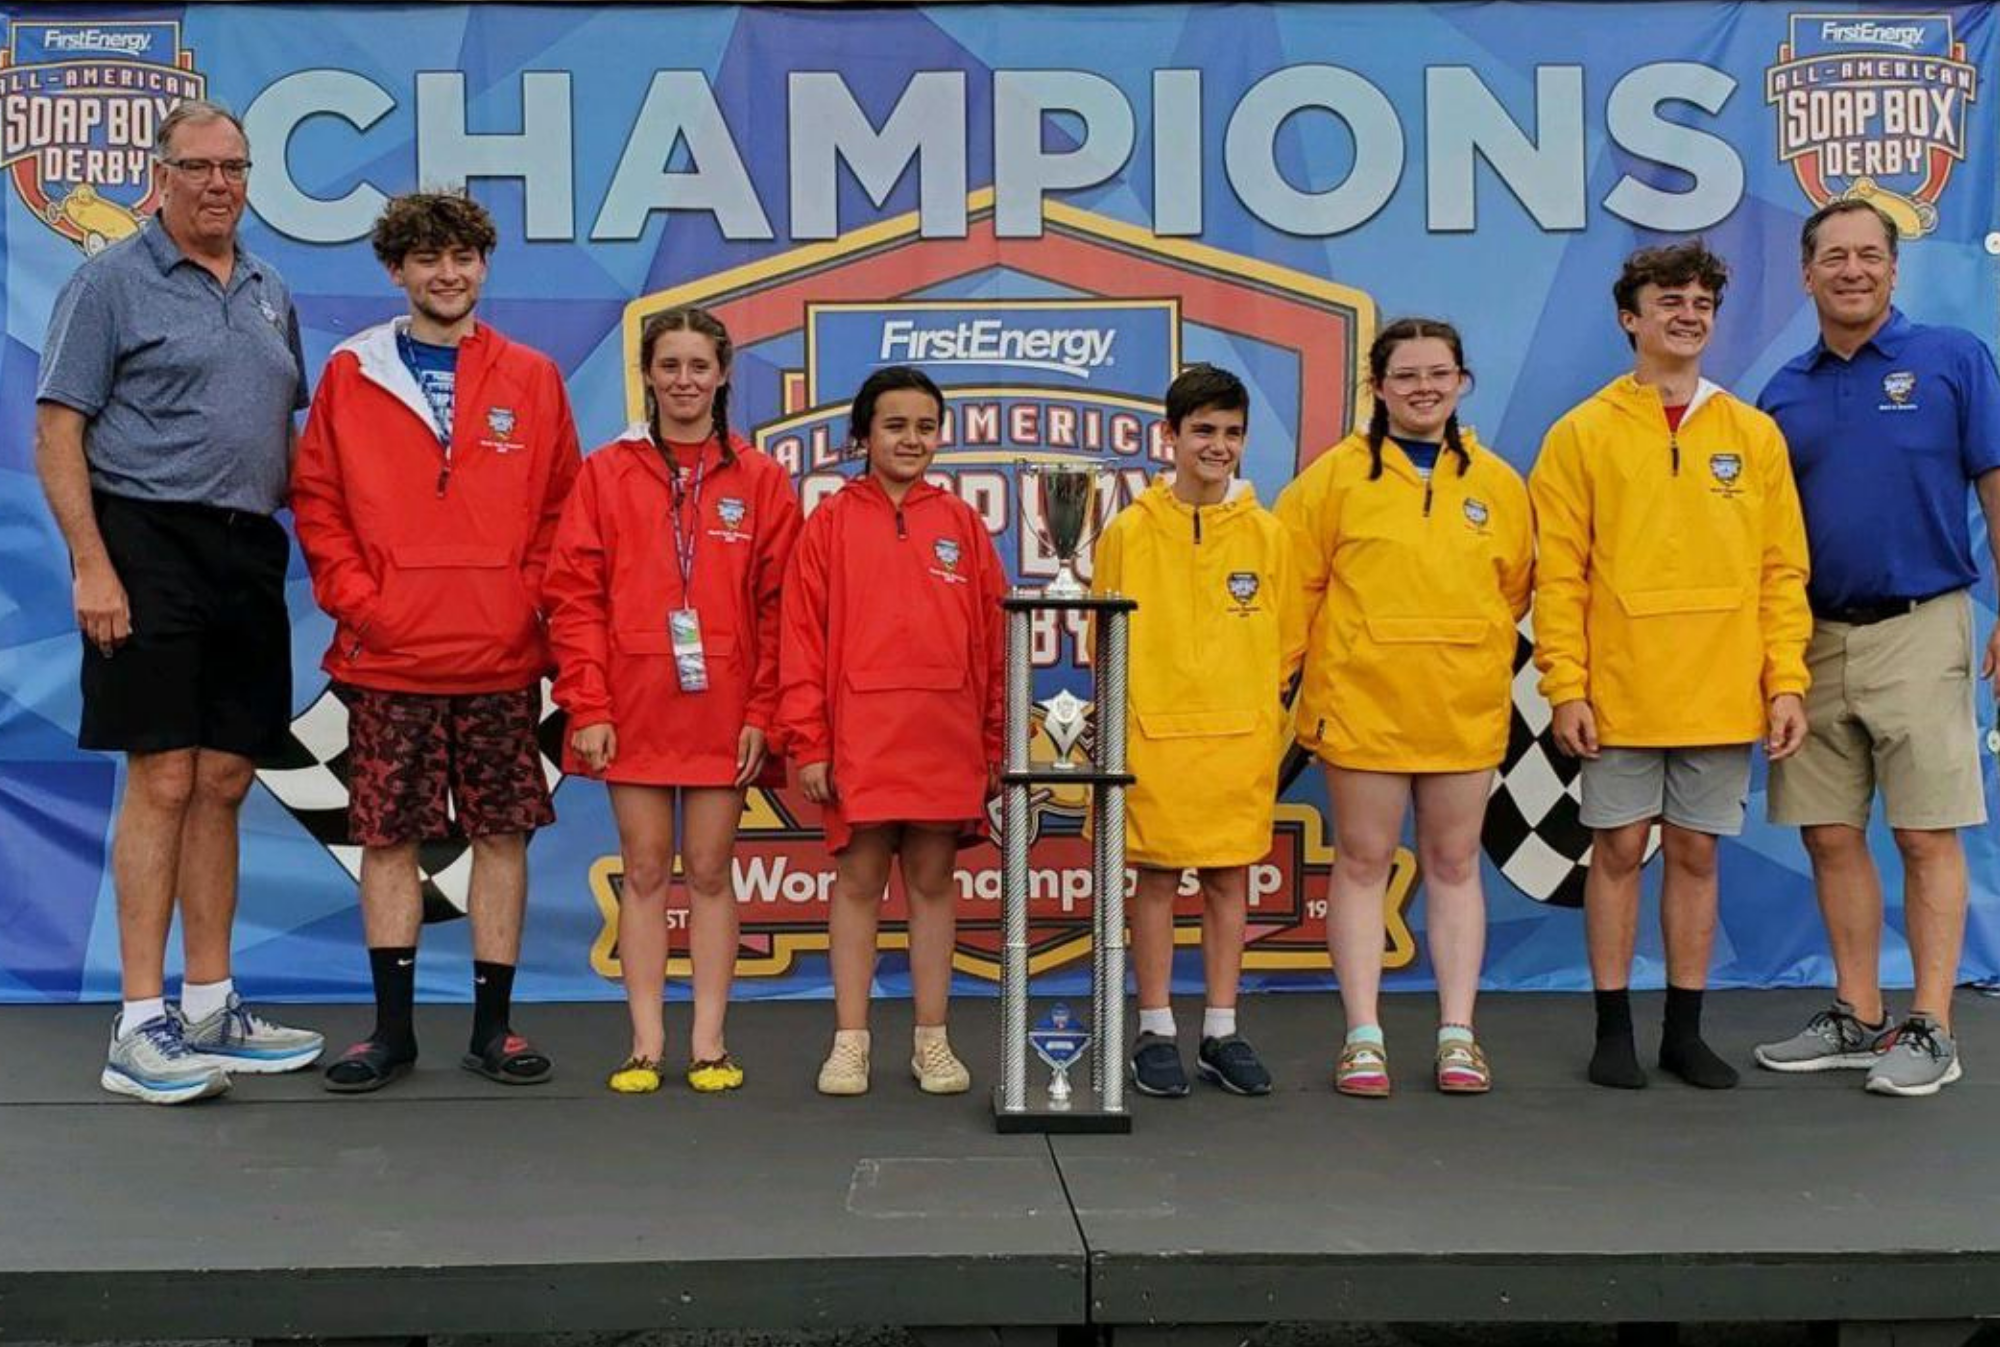 Bella Siddle, middle in the red jacket, poses with the five other division winners after the 83rd All-American Soap Box Derby, in Akron, Ohio, on Saturday, July 24, 2021.